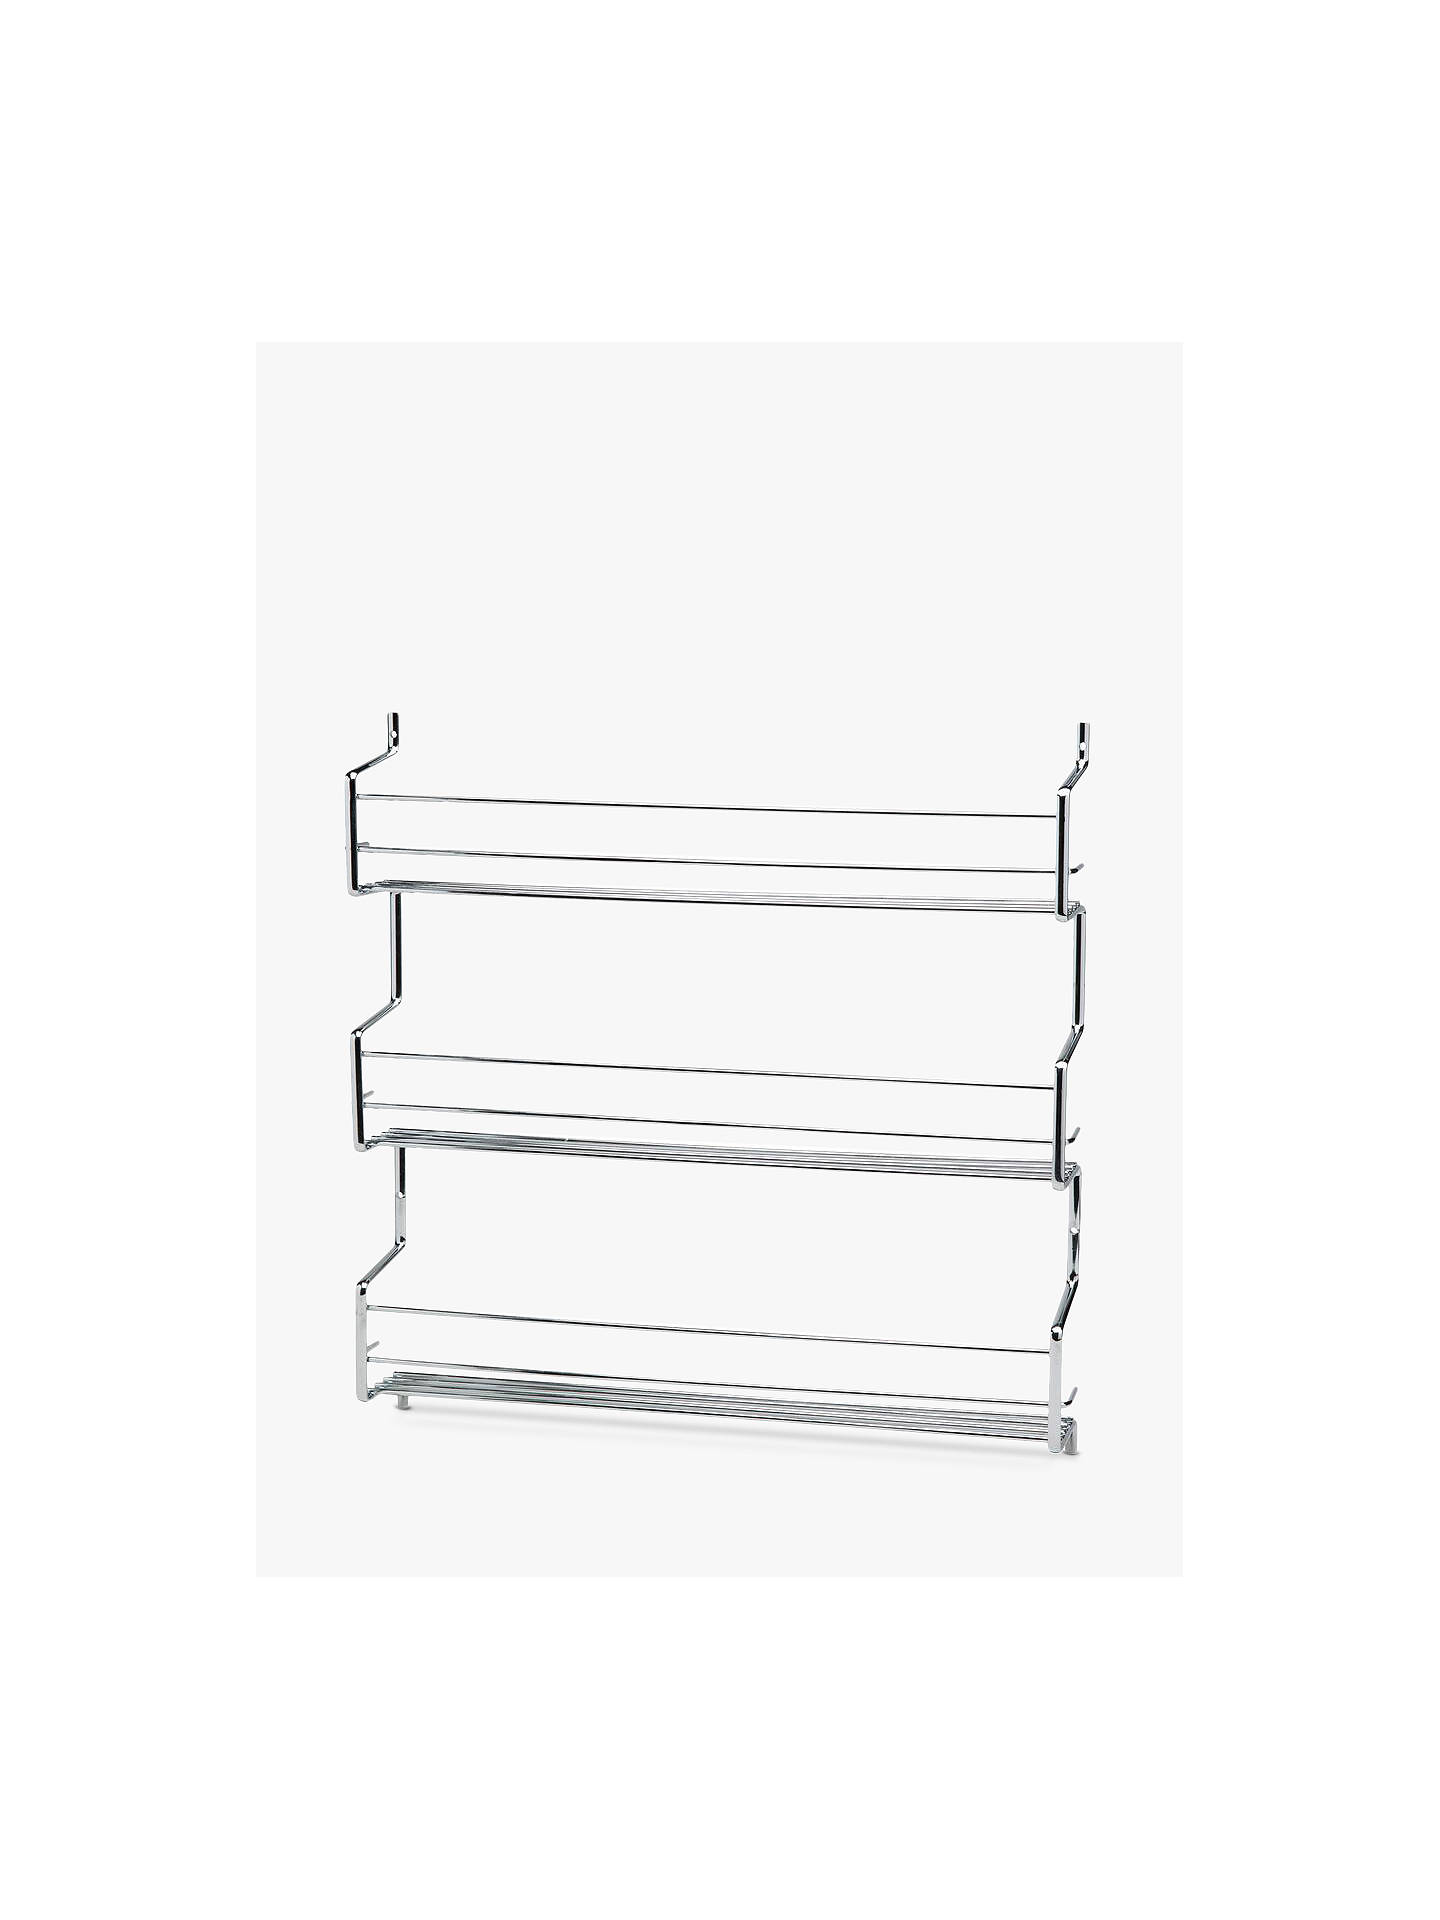 Hahn Wall-Mounted Steel Spice Rack with 3 Shelves at John